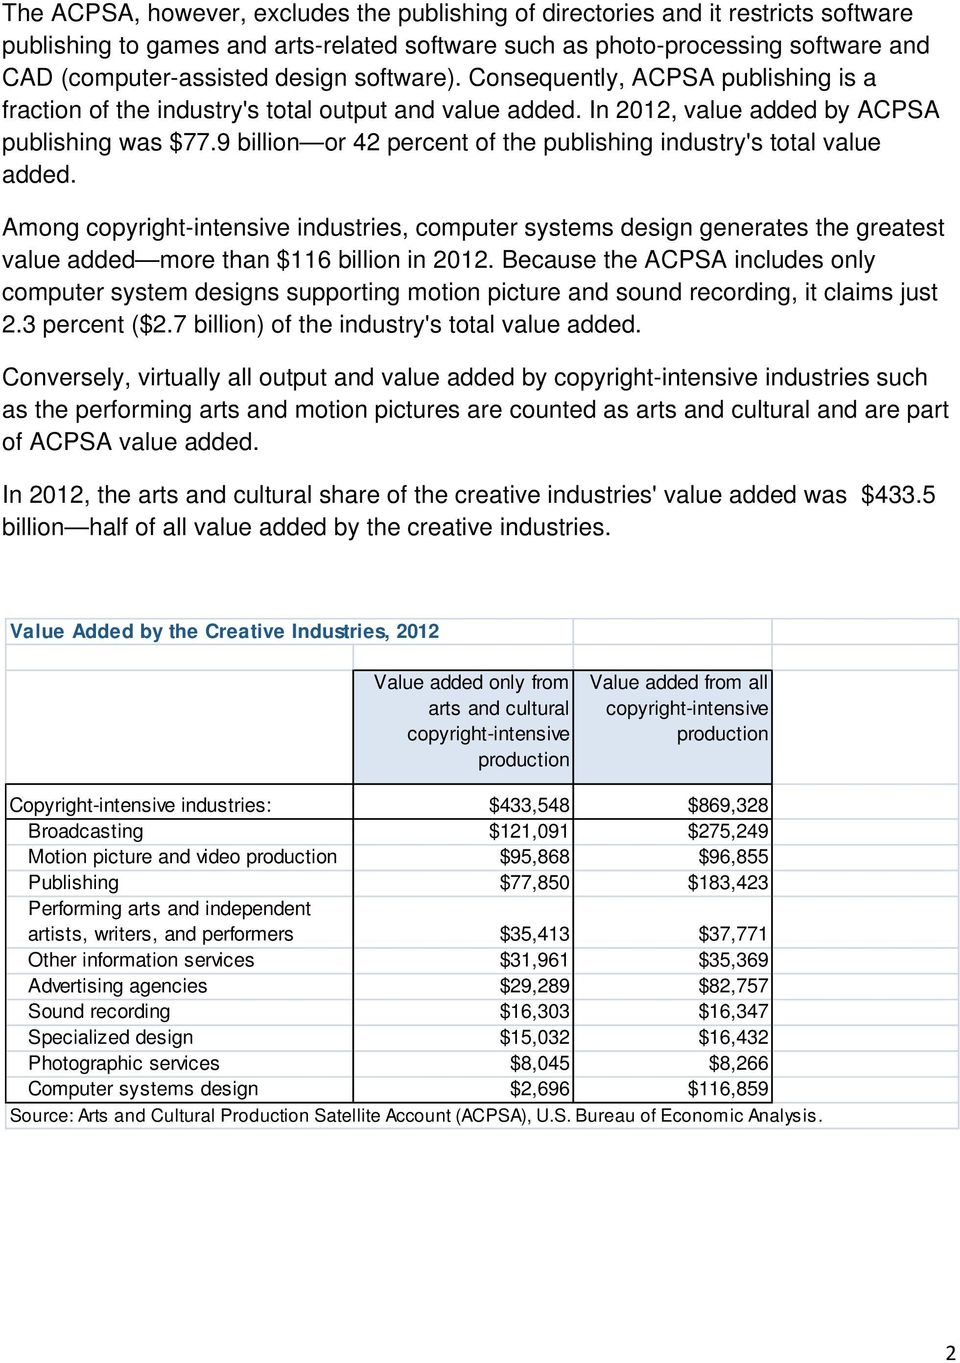 9 billion or 42 percent of the publishing industry's total value added. Among copyright-intensive industries, computer systems design generates the greatest value added more than $116 billion in 2012.